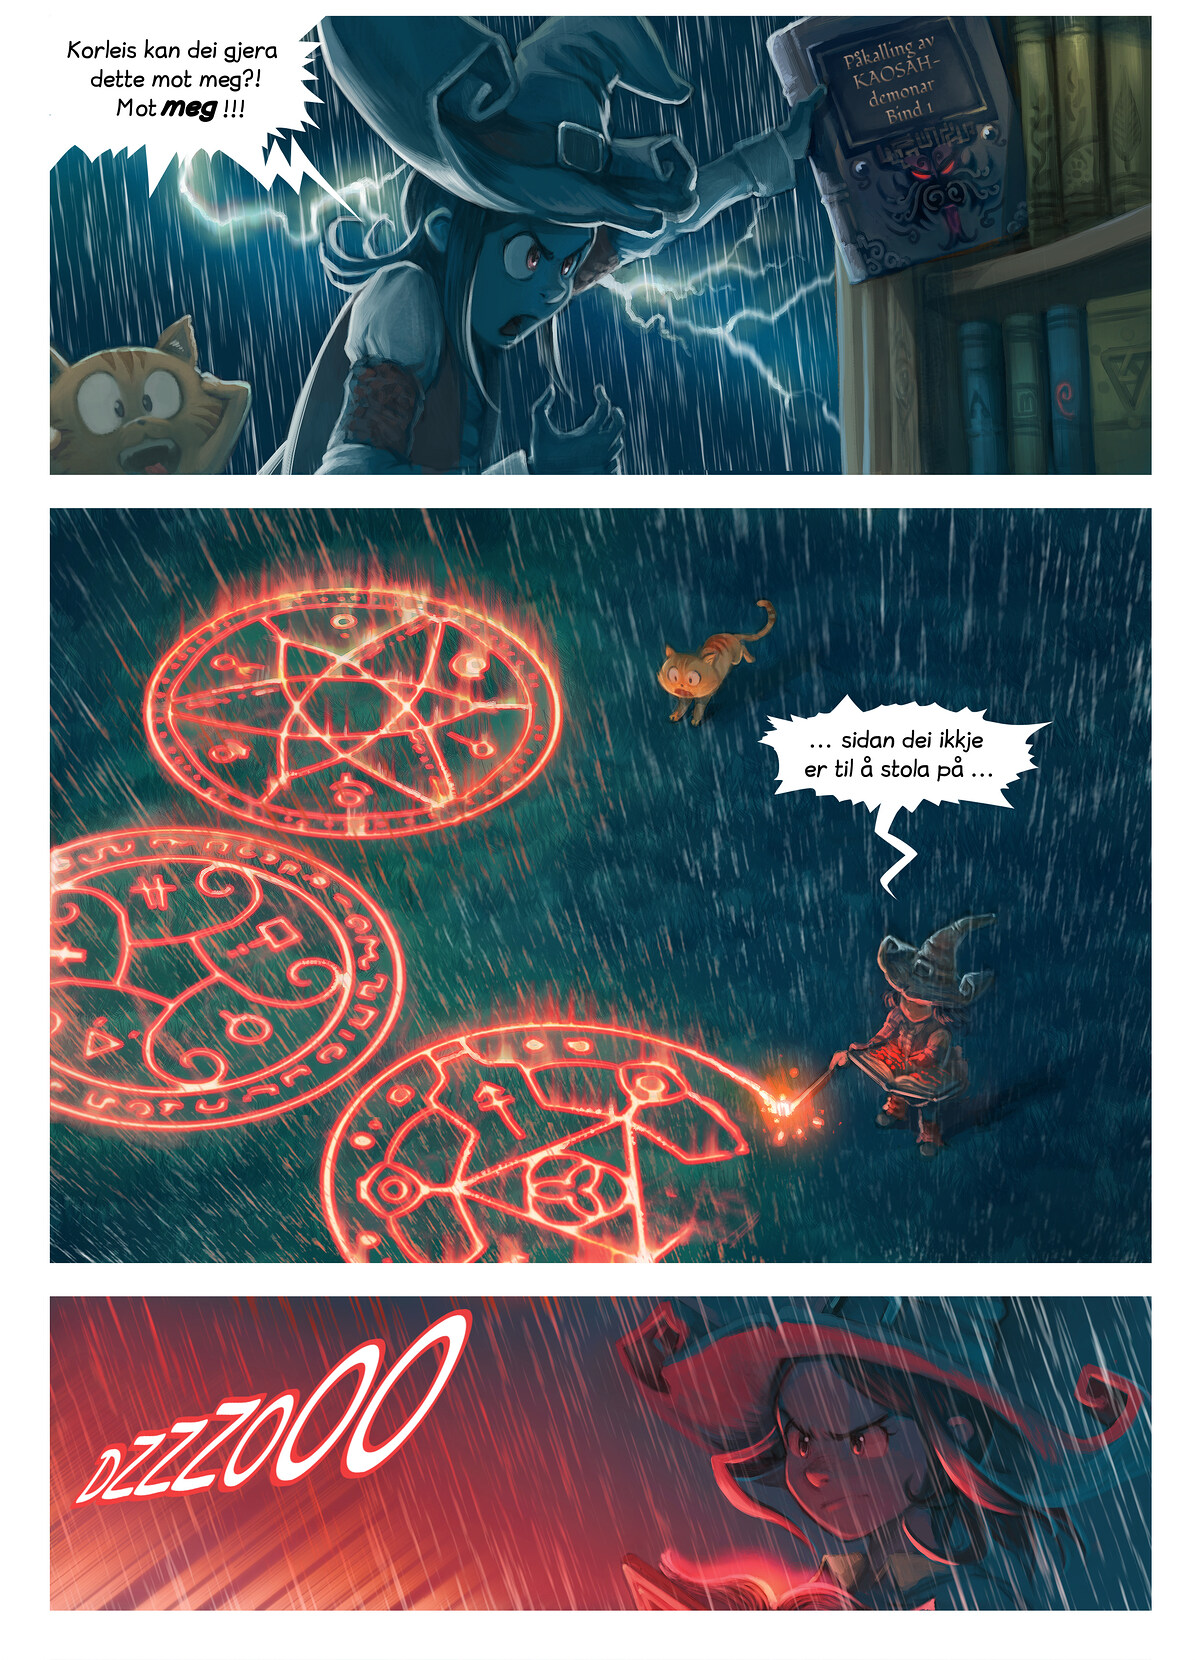 A webcomic page of Pepper&Carrot, episode 8 [nn], side 5